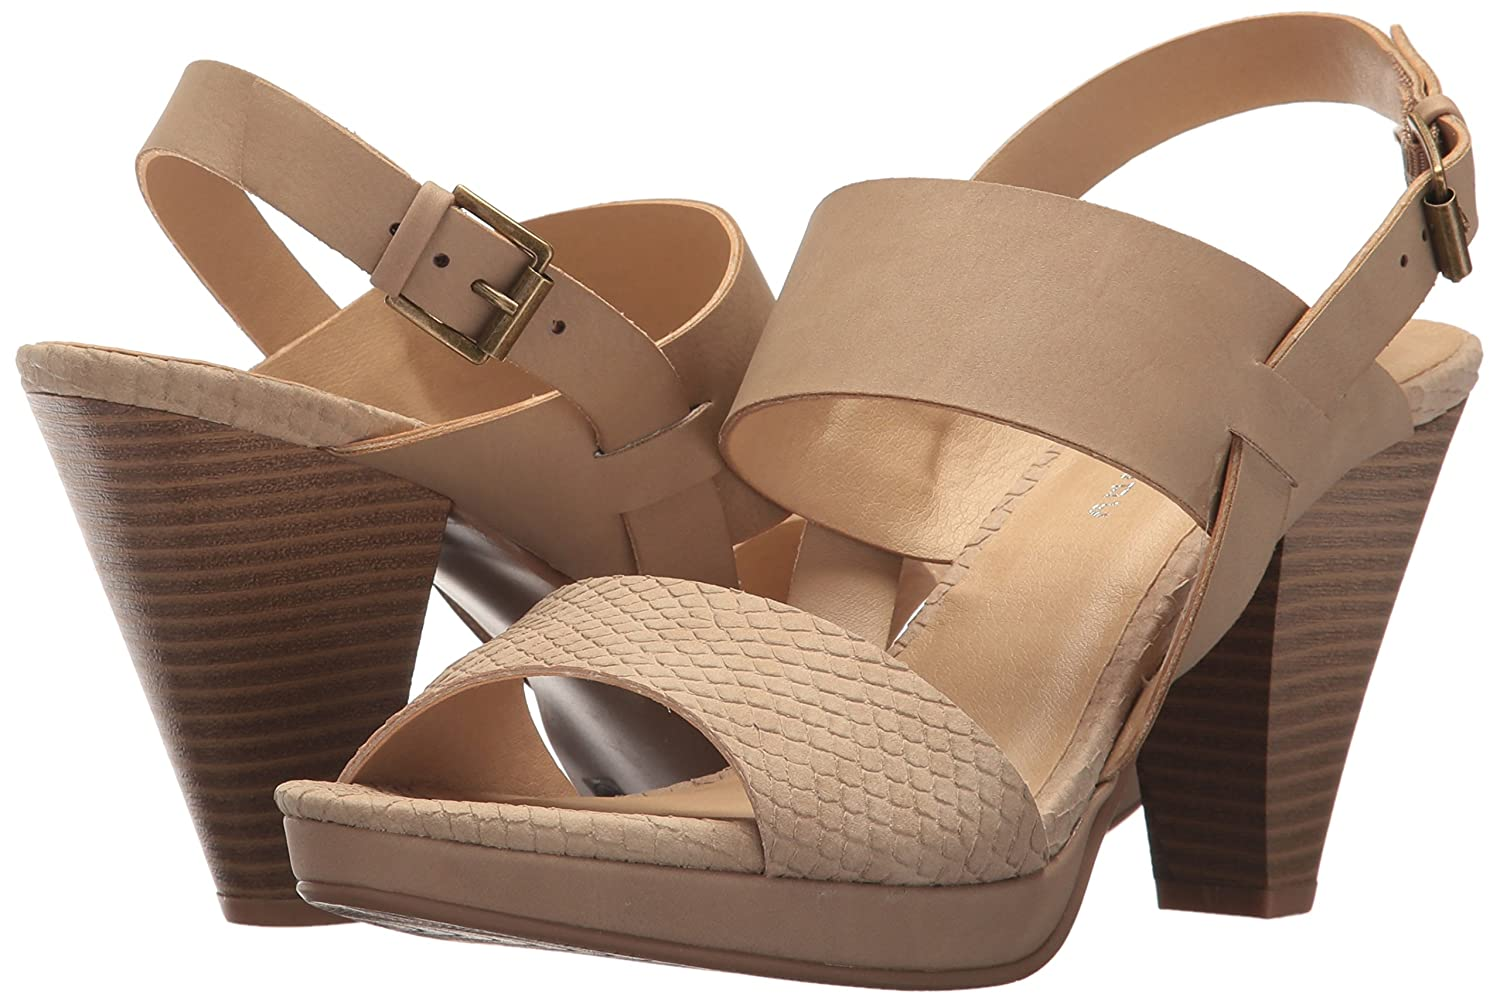 0653726c38fd Amazon.com  CL by Chinese Laundry Women s Worthy Heeled Sandal  Shoes